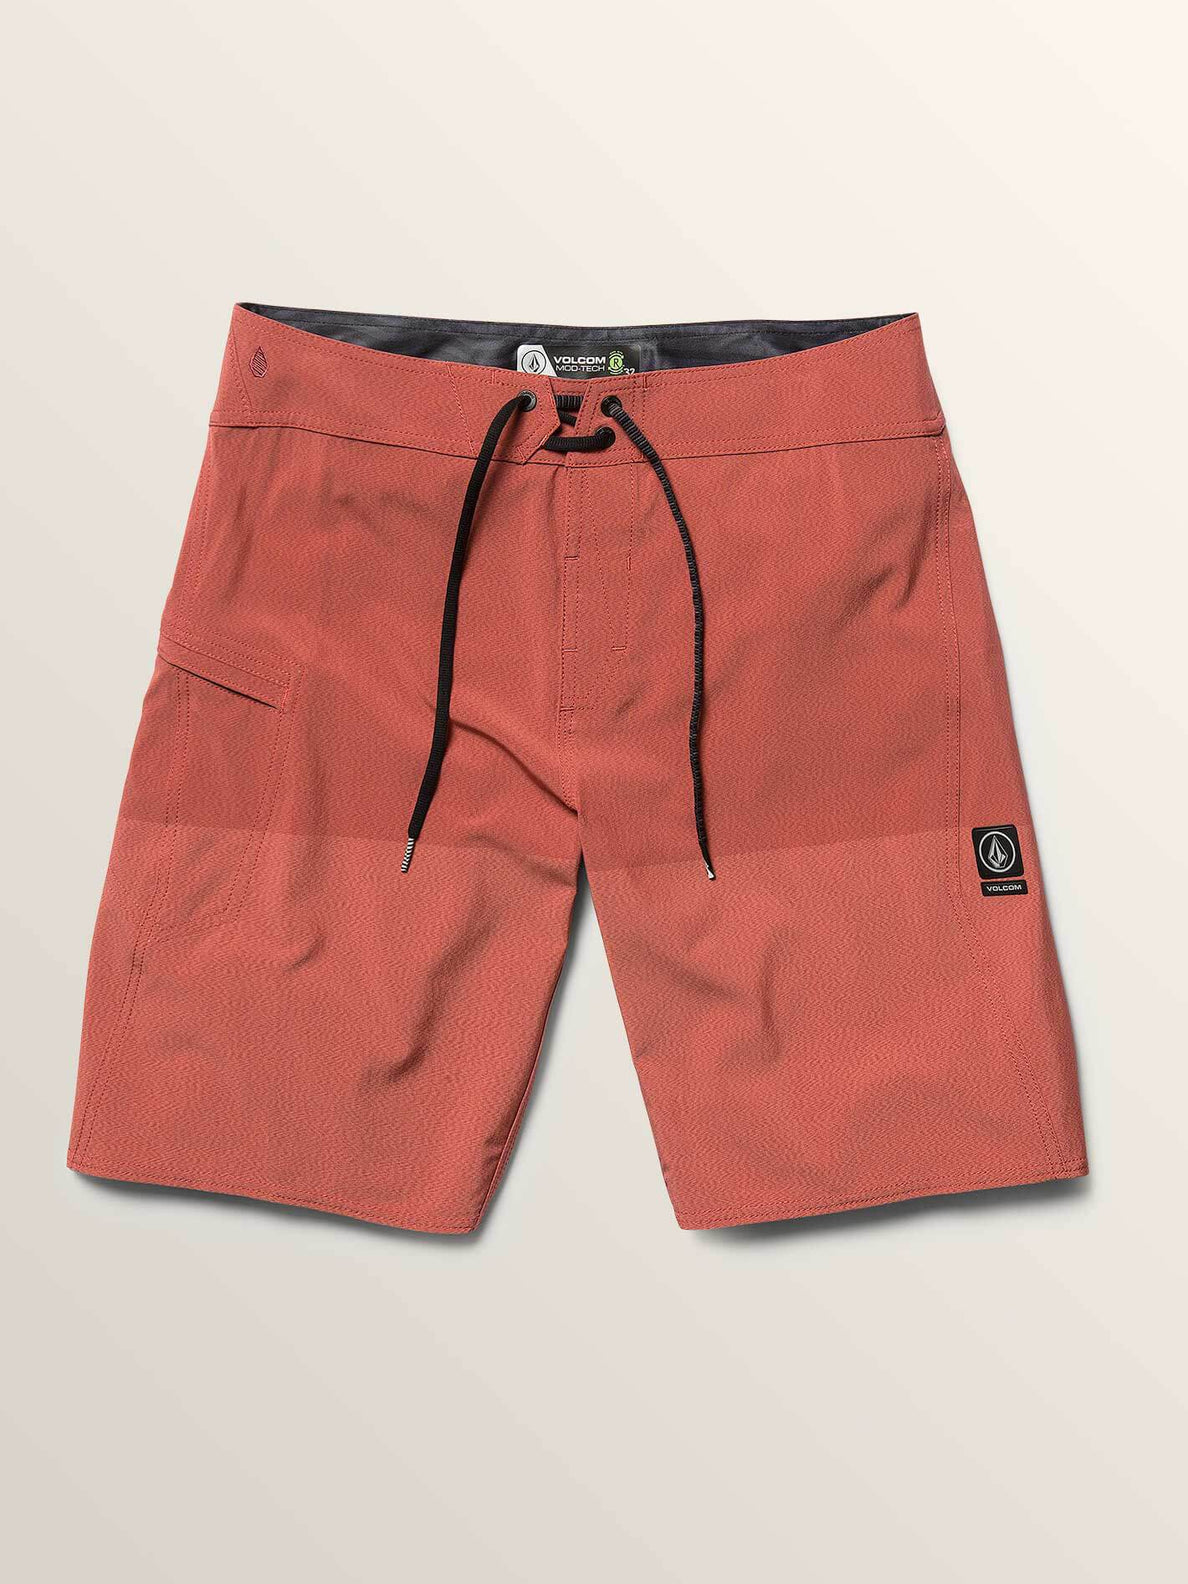 Lido Heather Mod Boardshorts In Orange Glow, Second Alternate View